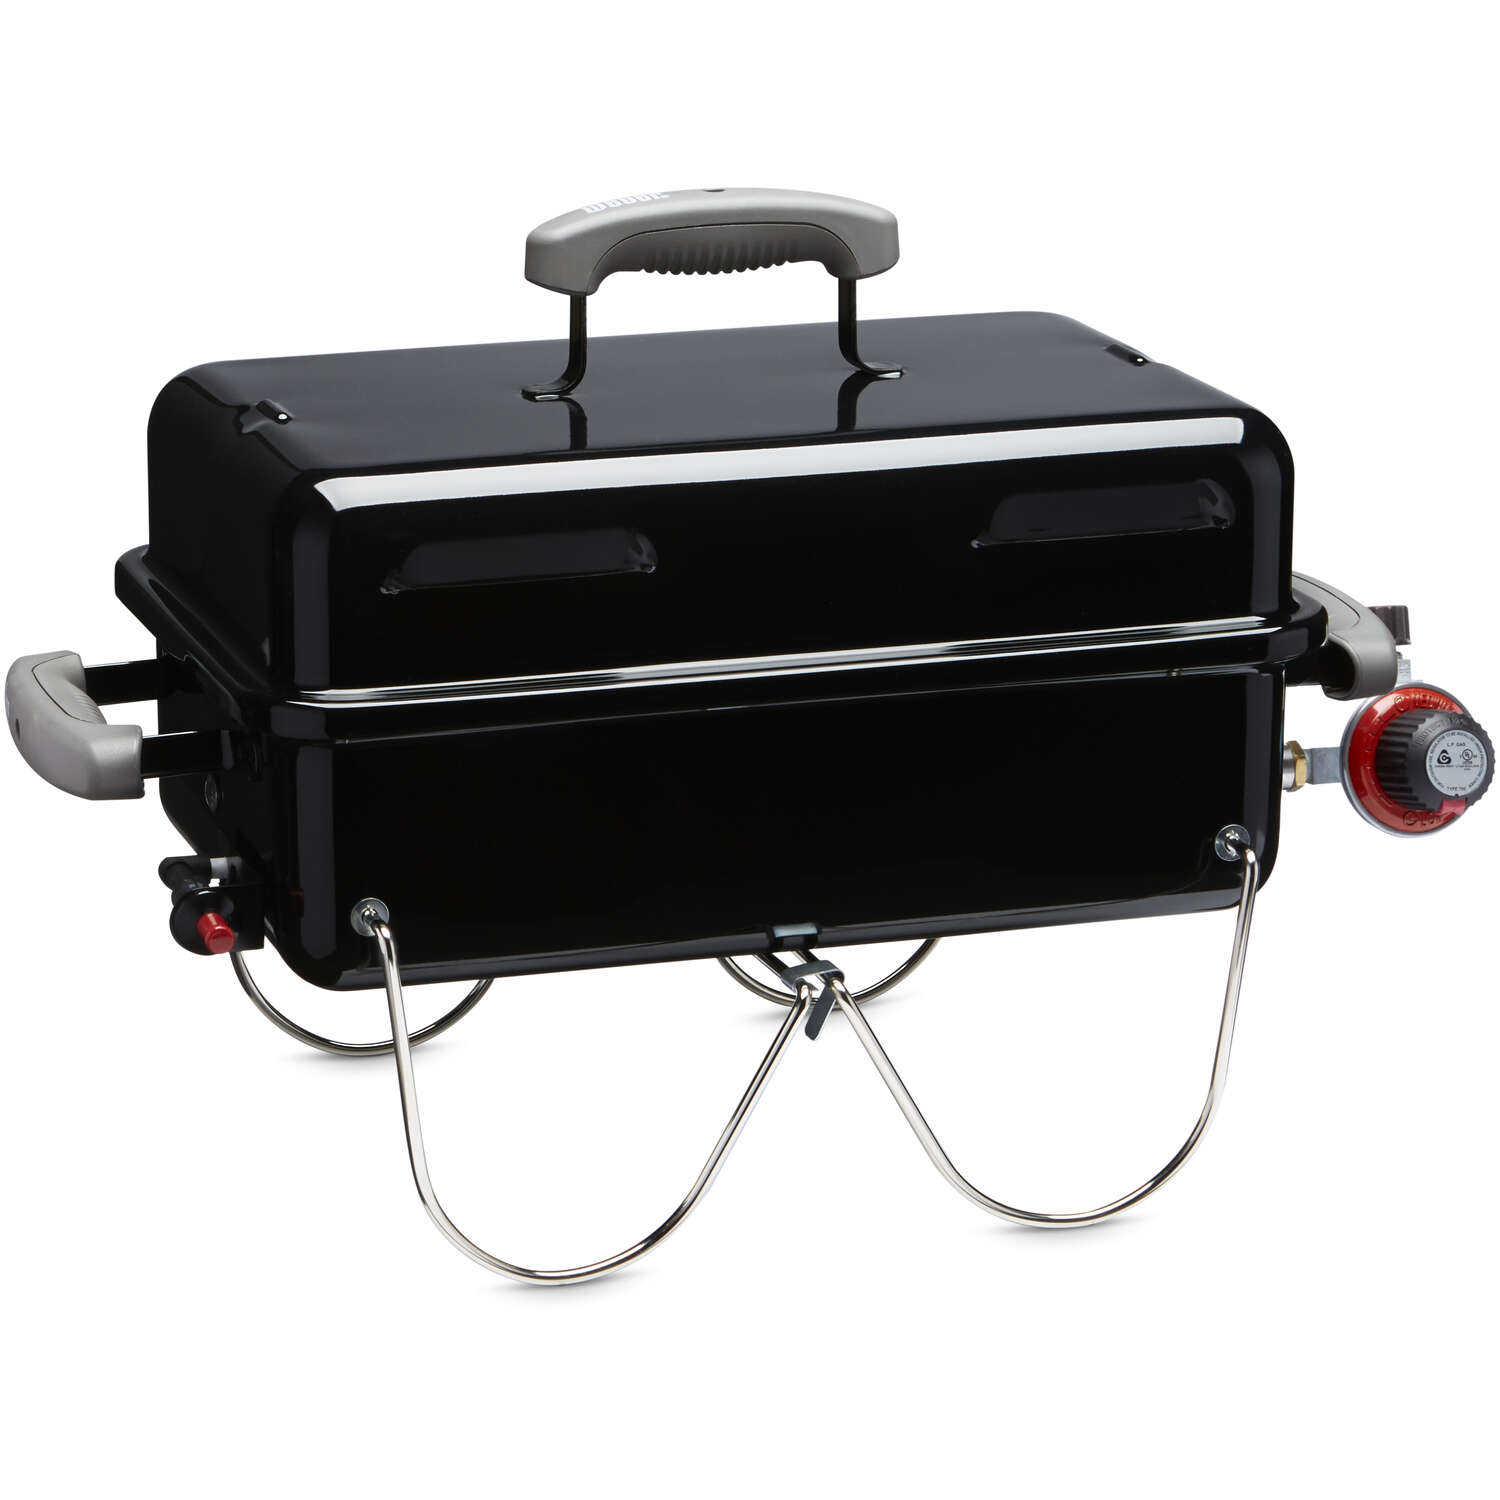 Weber  Go Anywhere  1 burners Propane  Black  Grill  6800 BTU